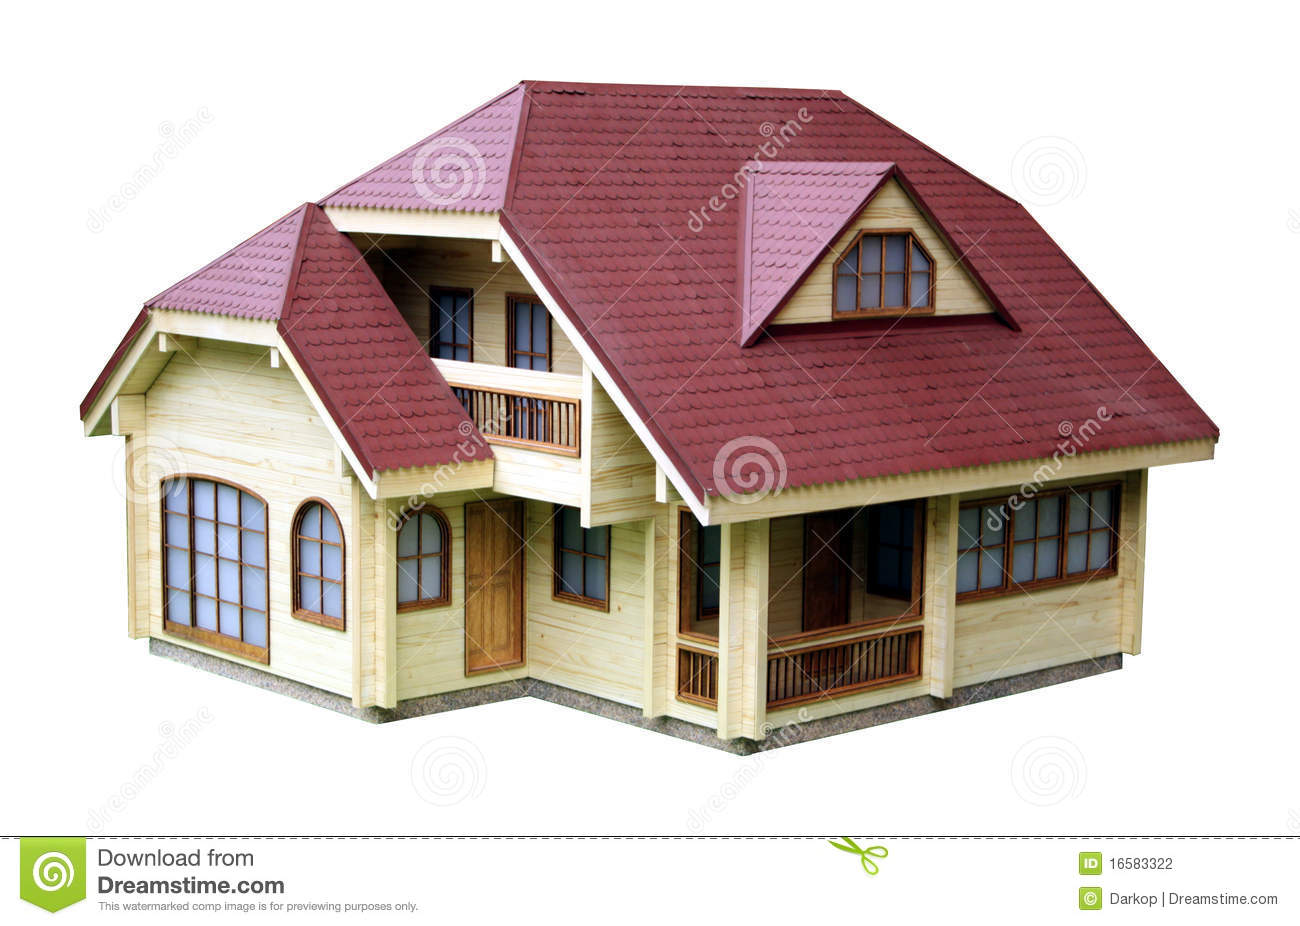 House model stock photography image 16583322 for Building model houses